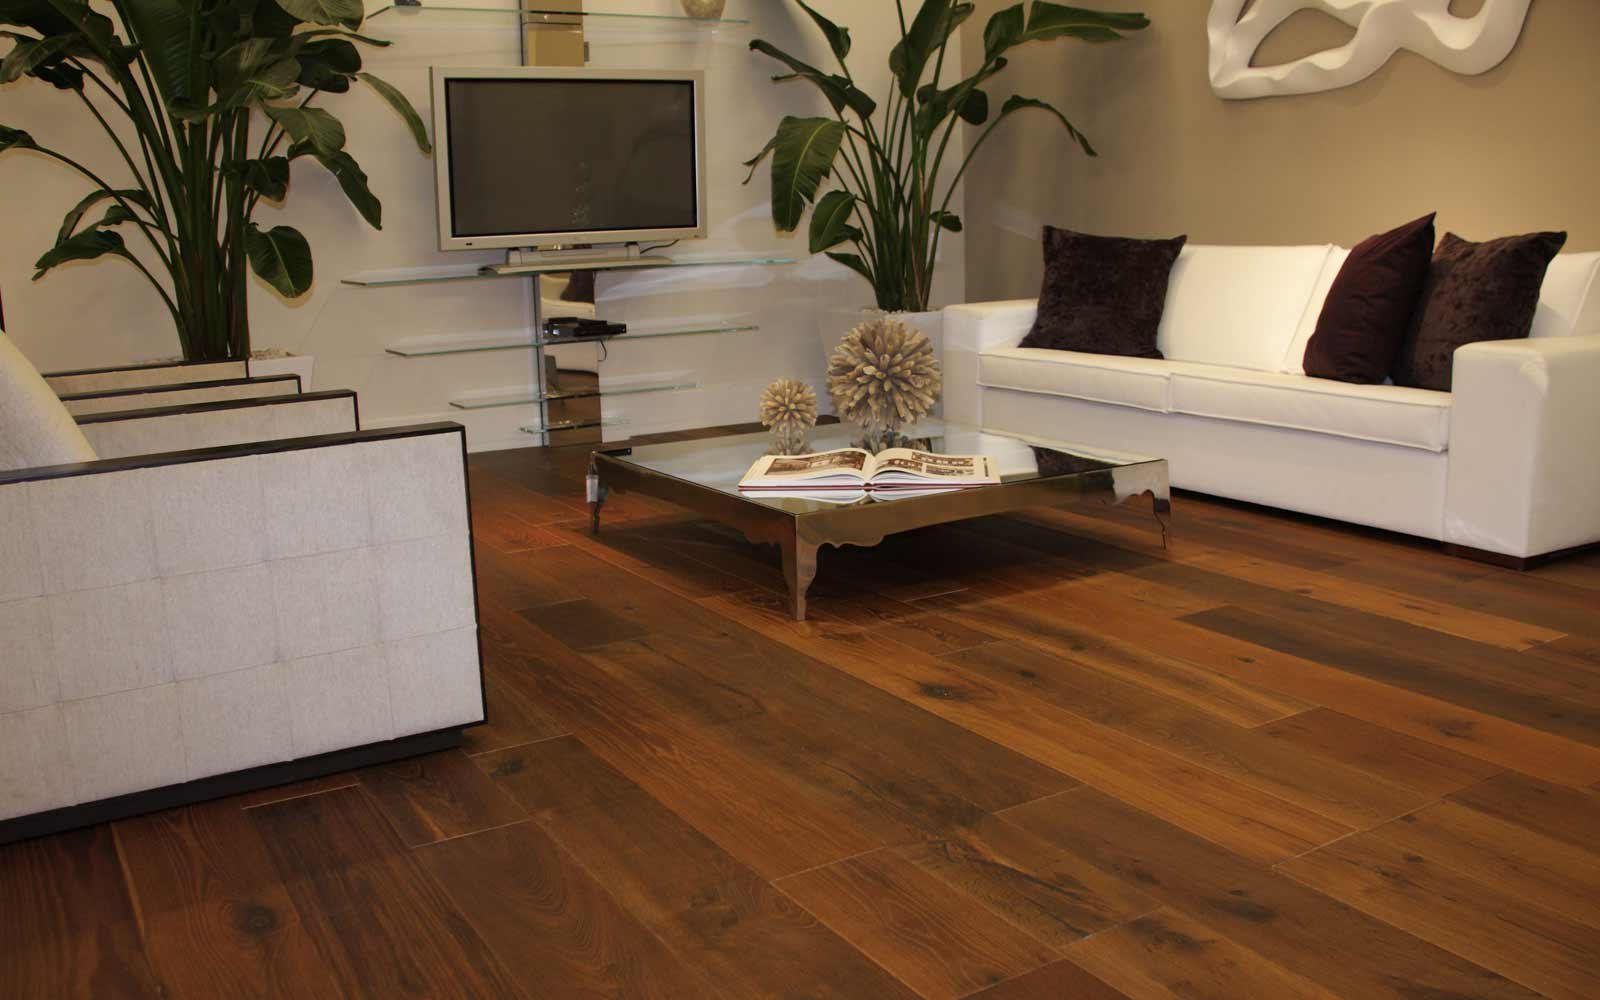 http://feelthehome.com/wp-content/uploads/2012/04/Exotic-Brazilian-KOA-Home-Flooring-Design.jpg